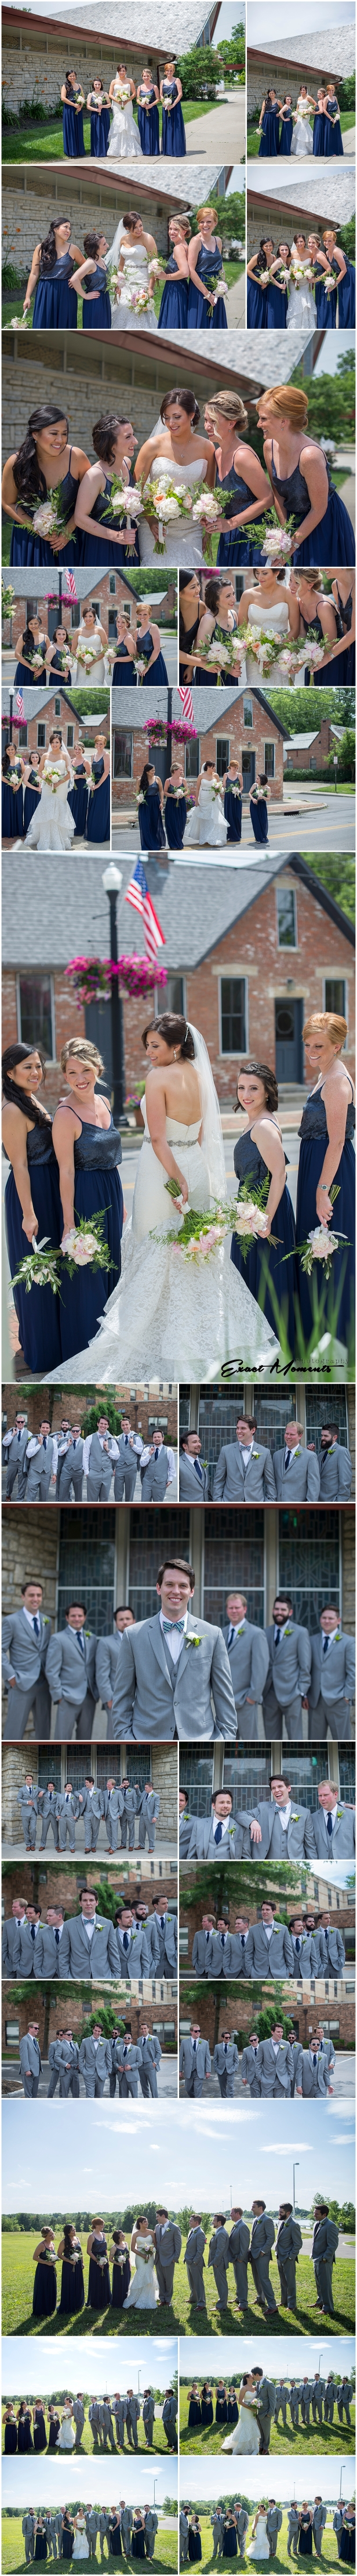 Wedding Photos in Westerville Ohio